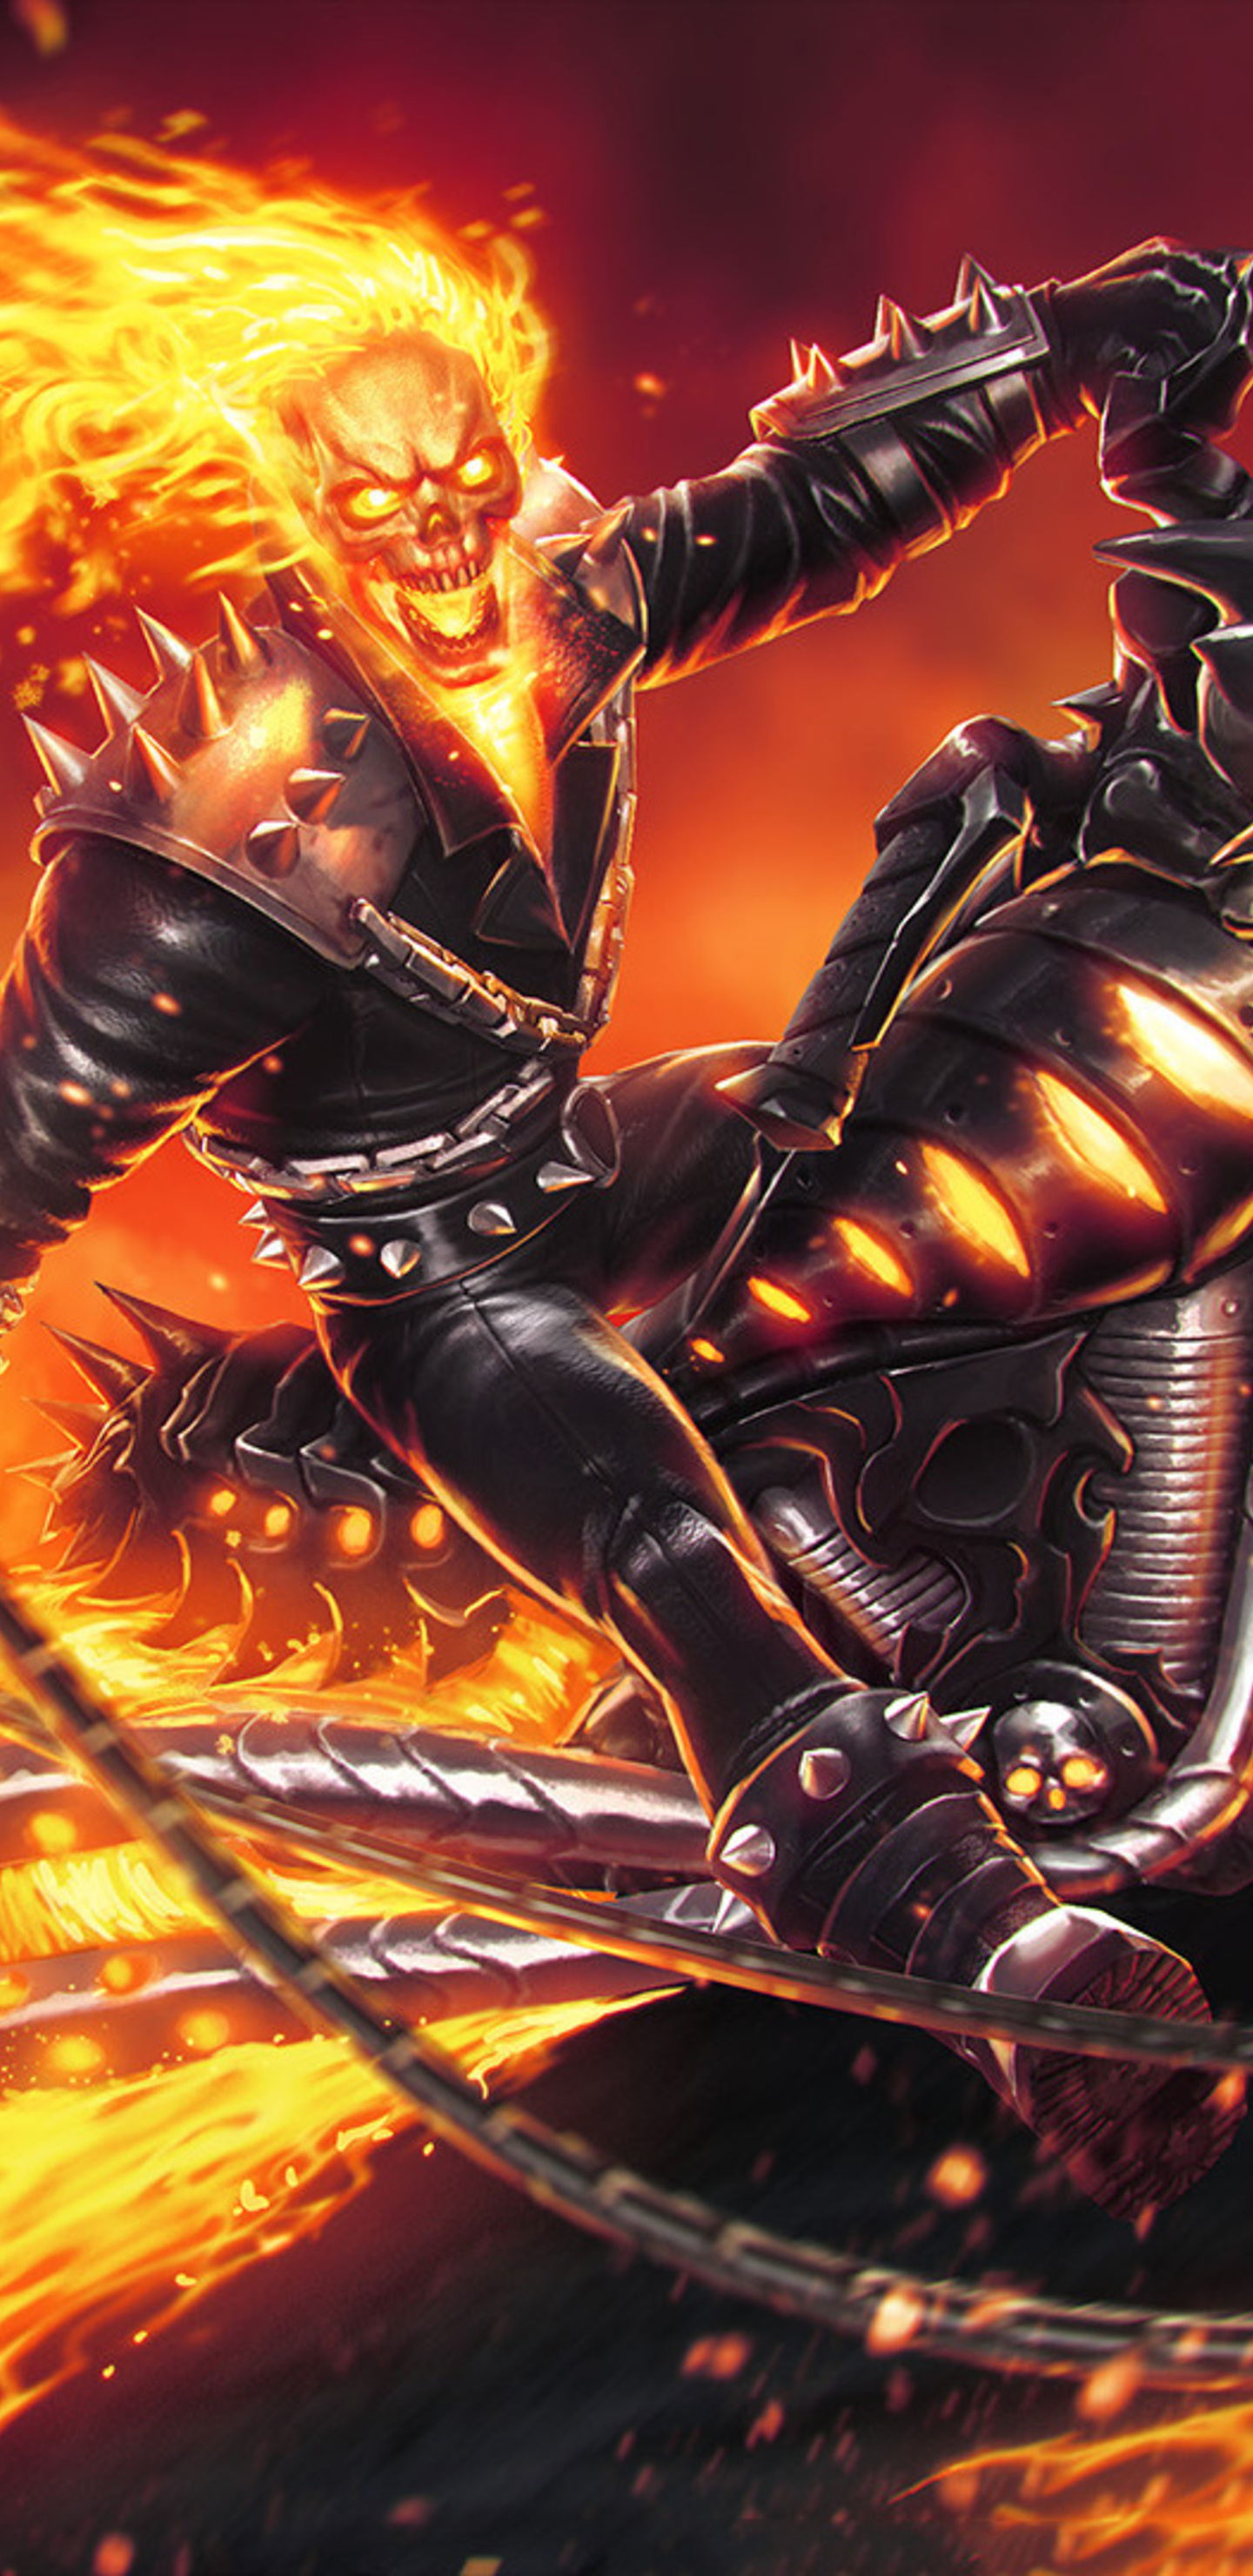 1440x2960 ghost rider marvel contest of champions samsung galaxy